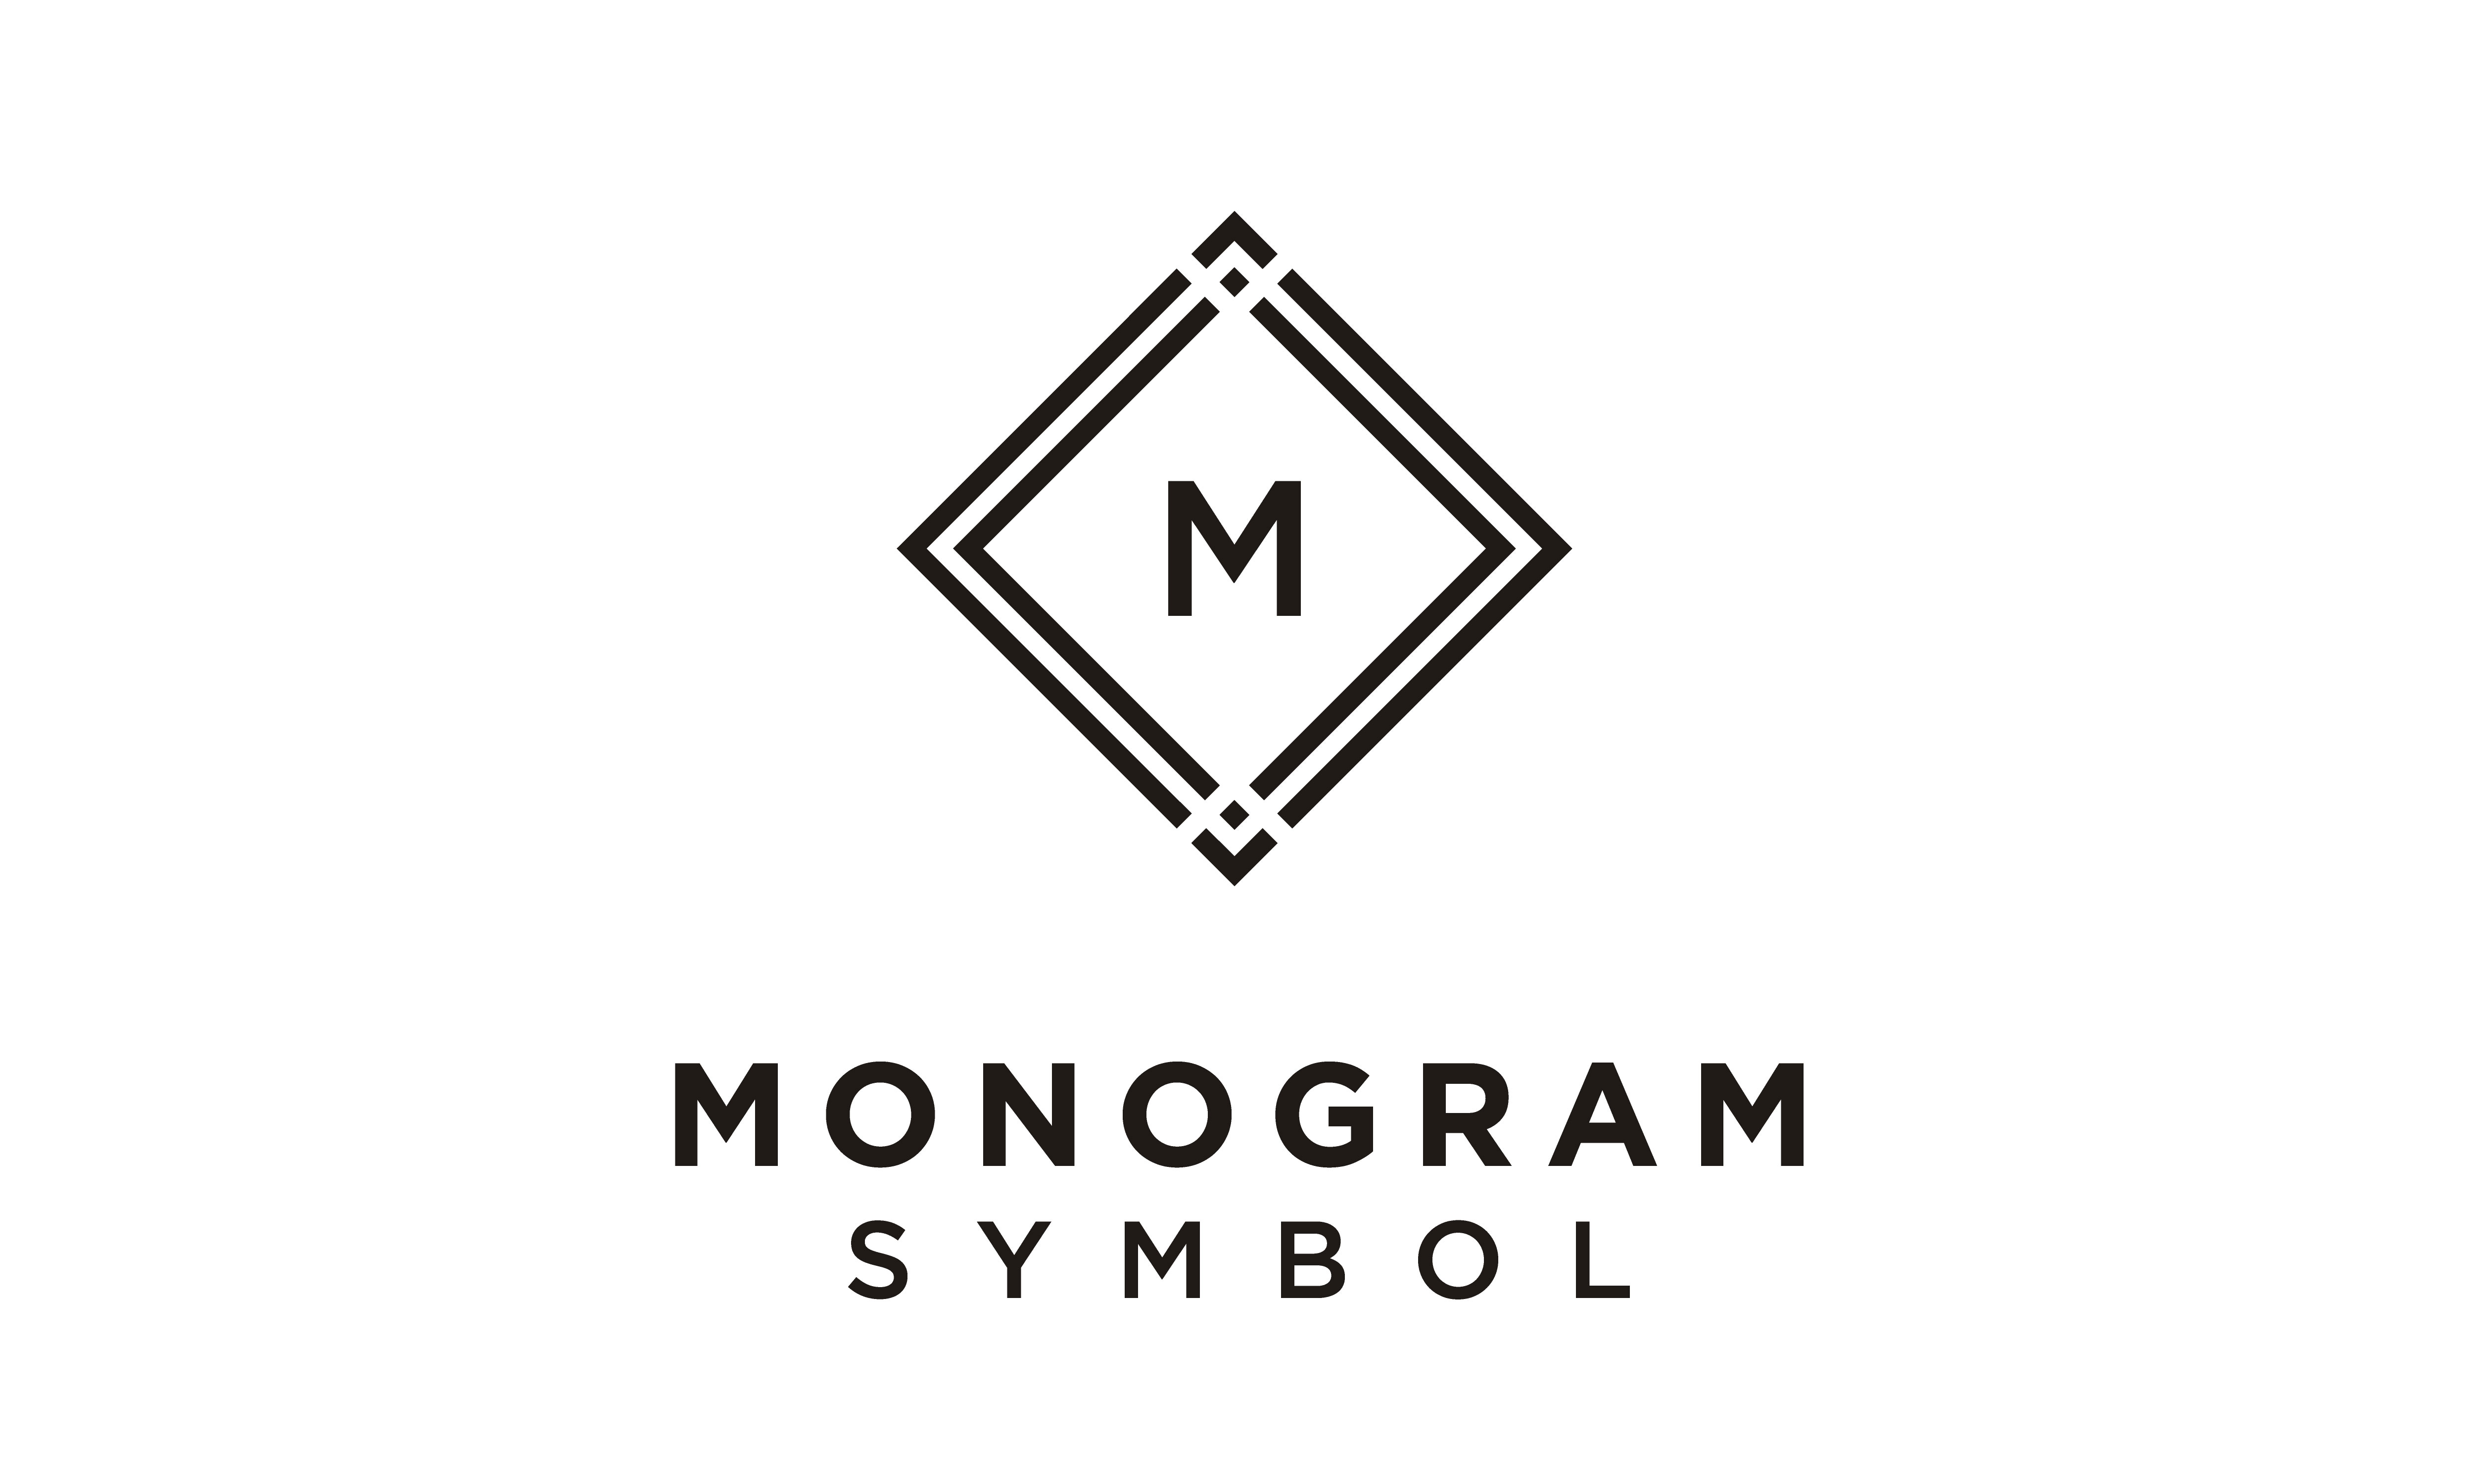 Download Free Initial M Art Deco Luxury Vintage Logo Graphic By Enola99d for Cricut Explore, Silhouette and other cutting machines.